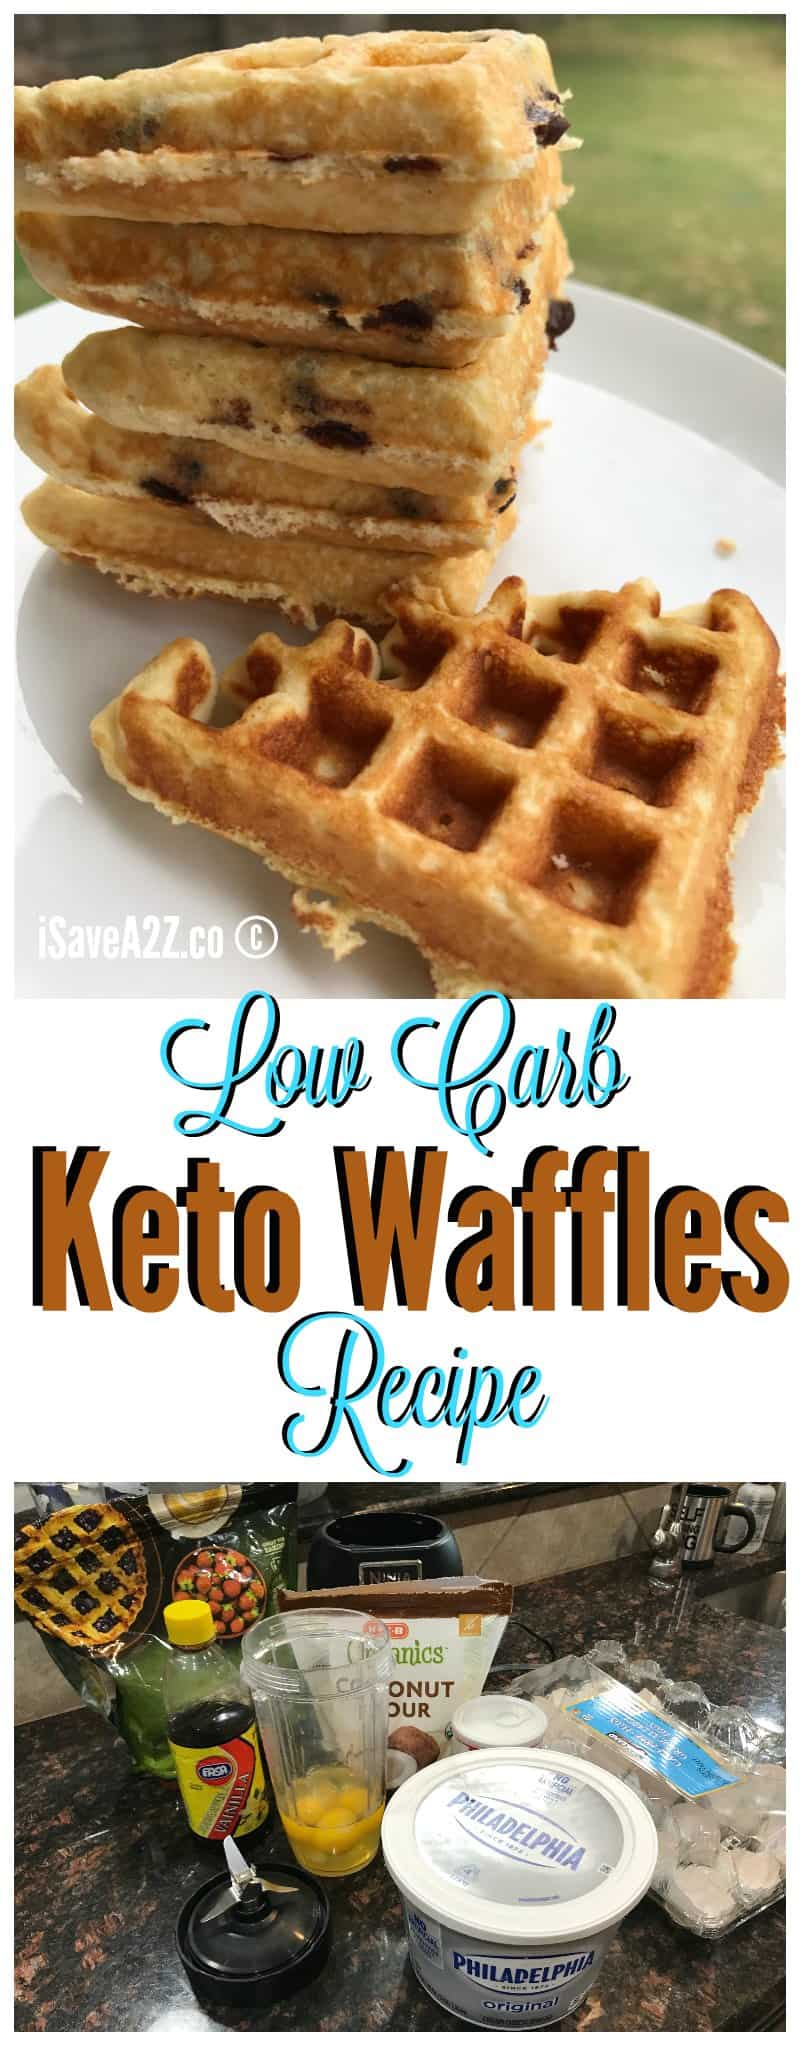 Low Carb Keto Fluffy waffles recipe